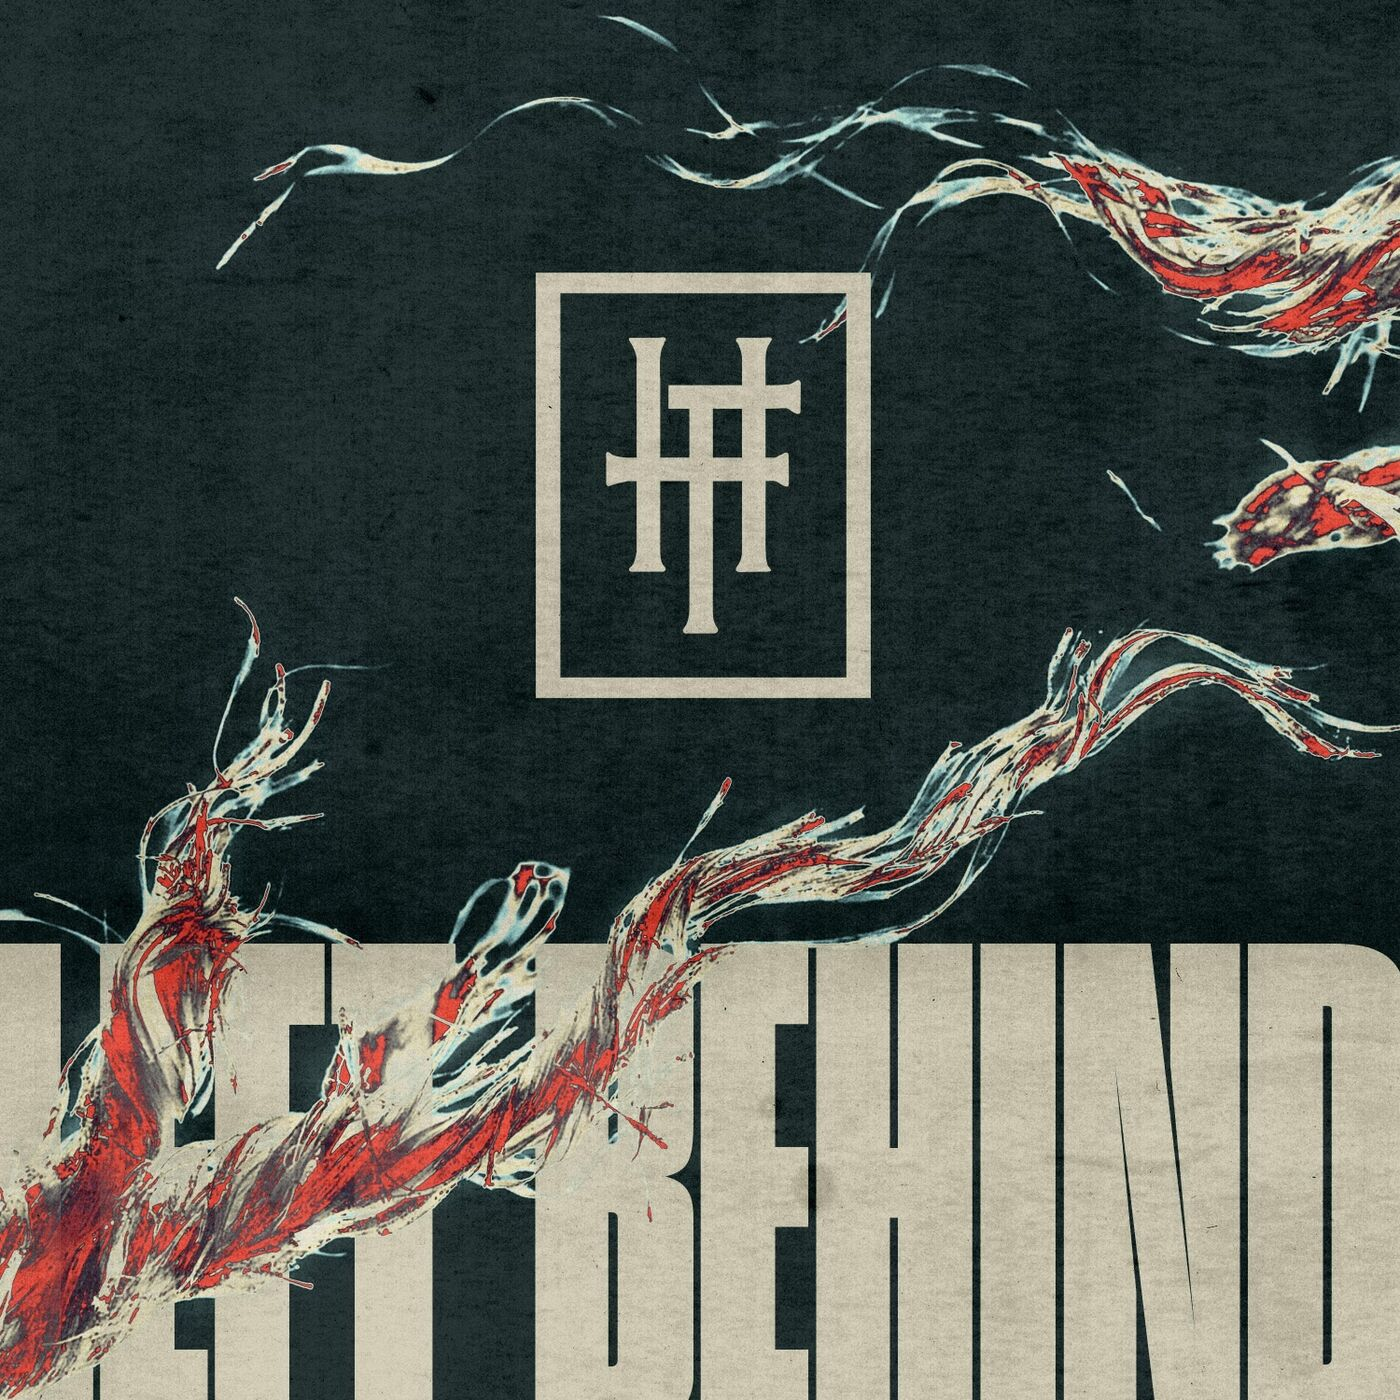 Hollow Front - Left Behind [single] (2019)